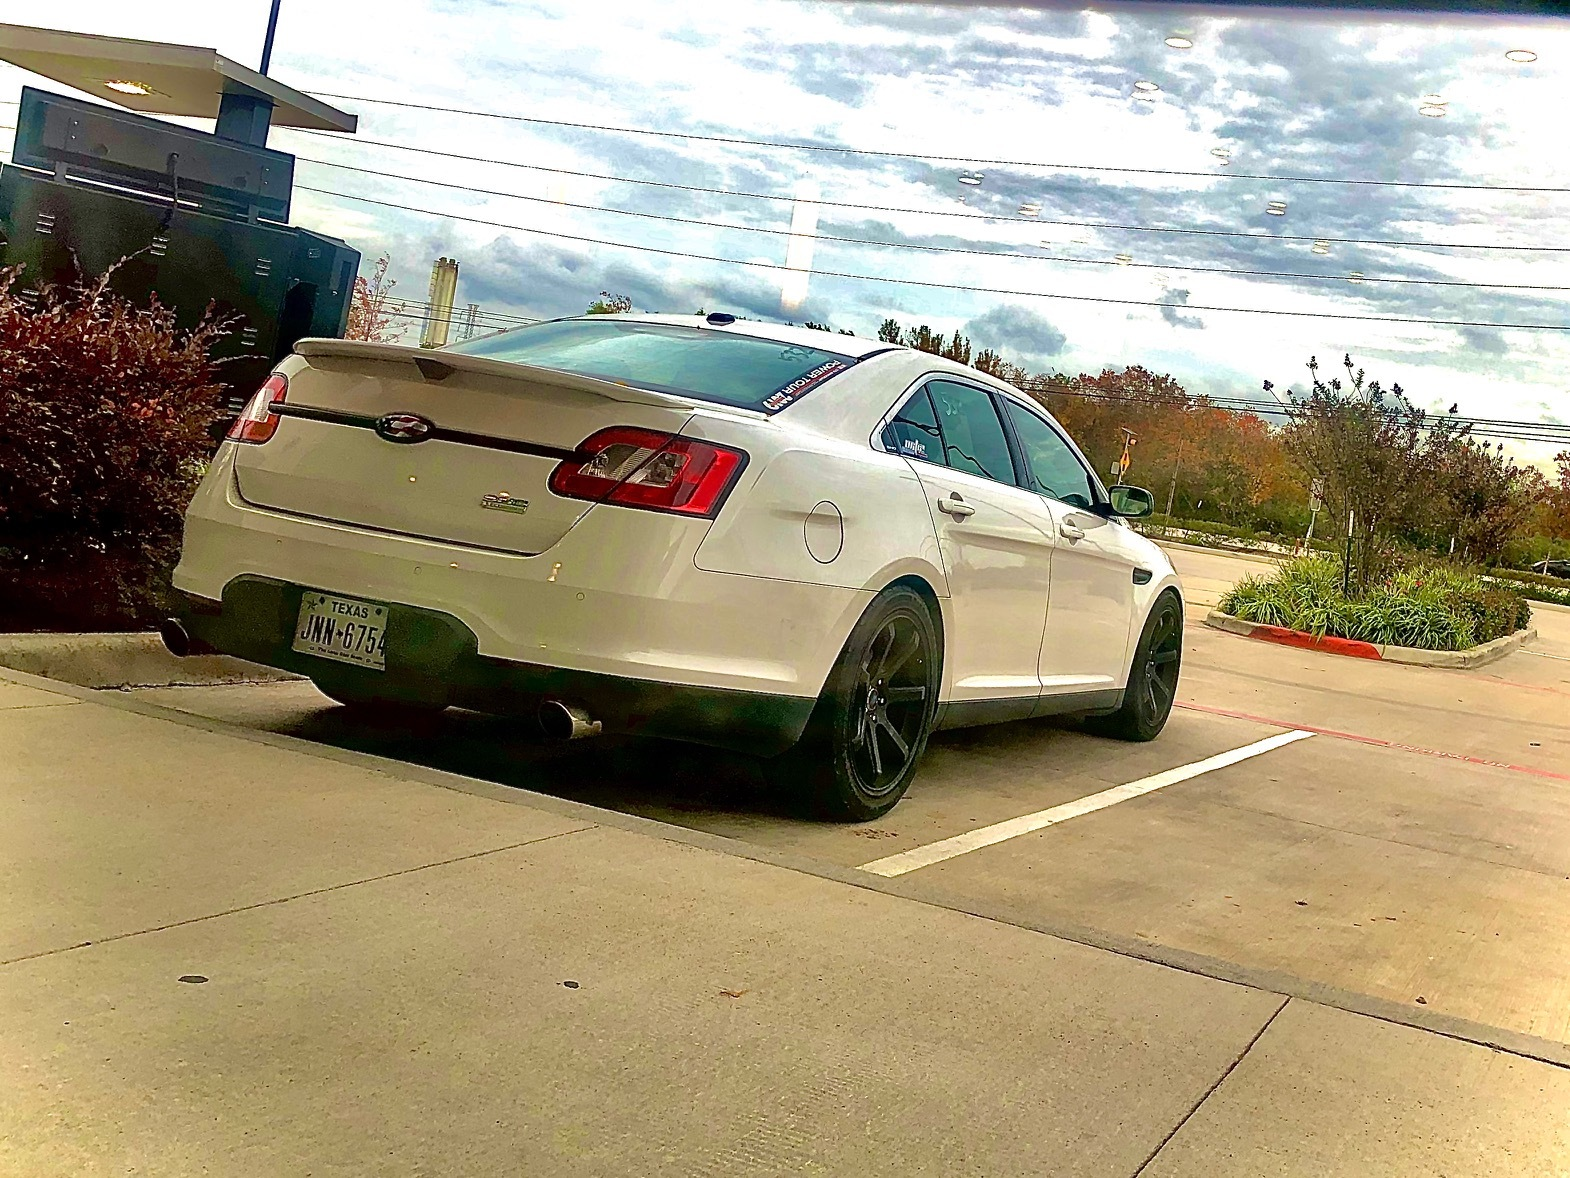 2010 White Ford Taurus SHO picture, mods, upgrades